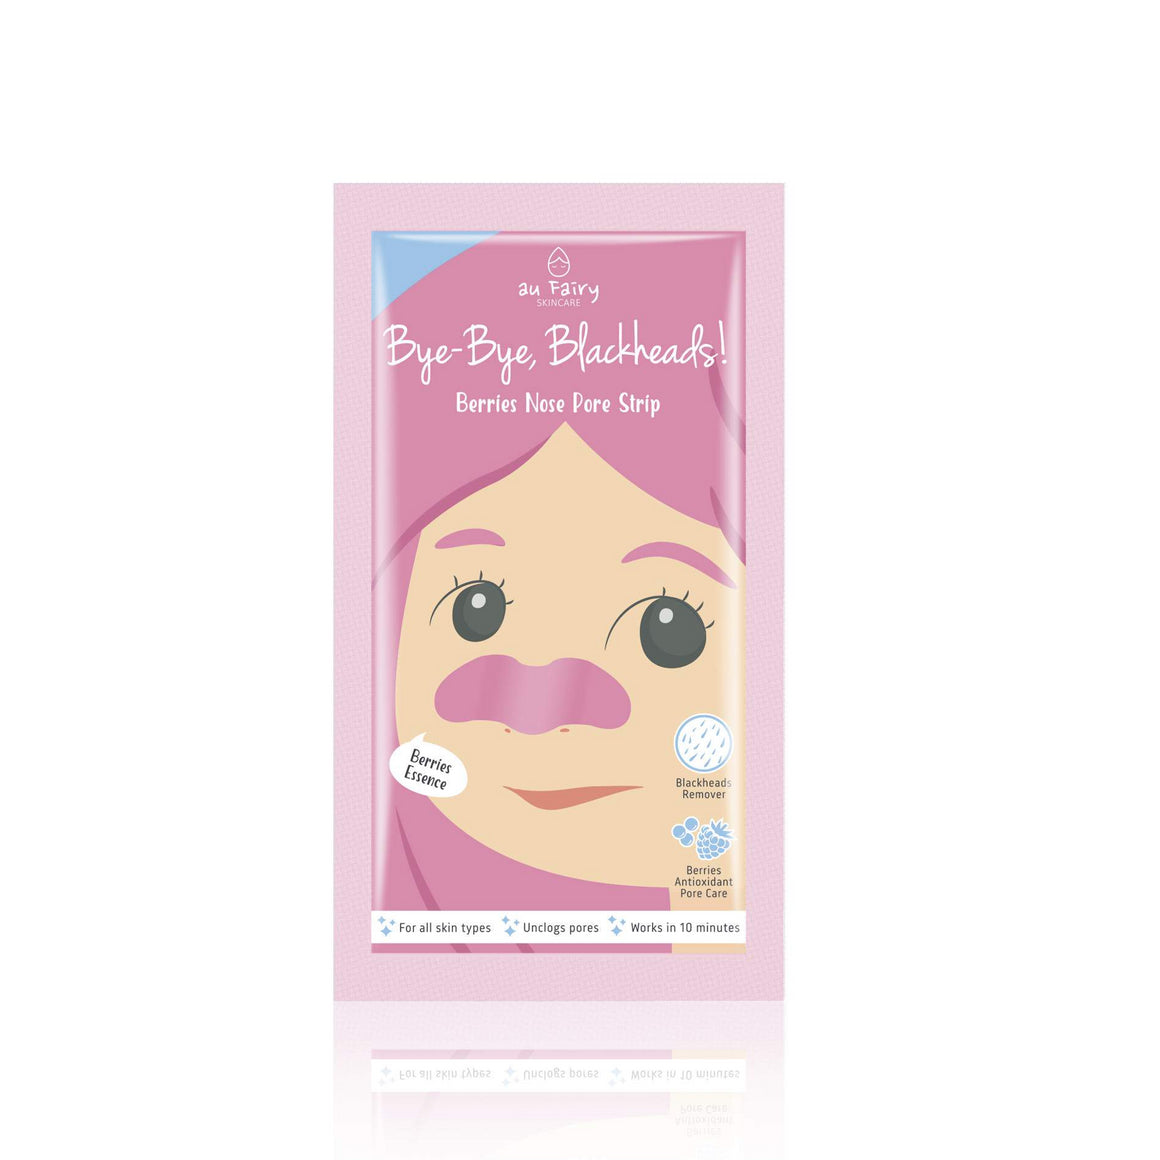 AUFAIRY Bye-bye, Blackheads! Berry Nose Pore Strip - Yoskin